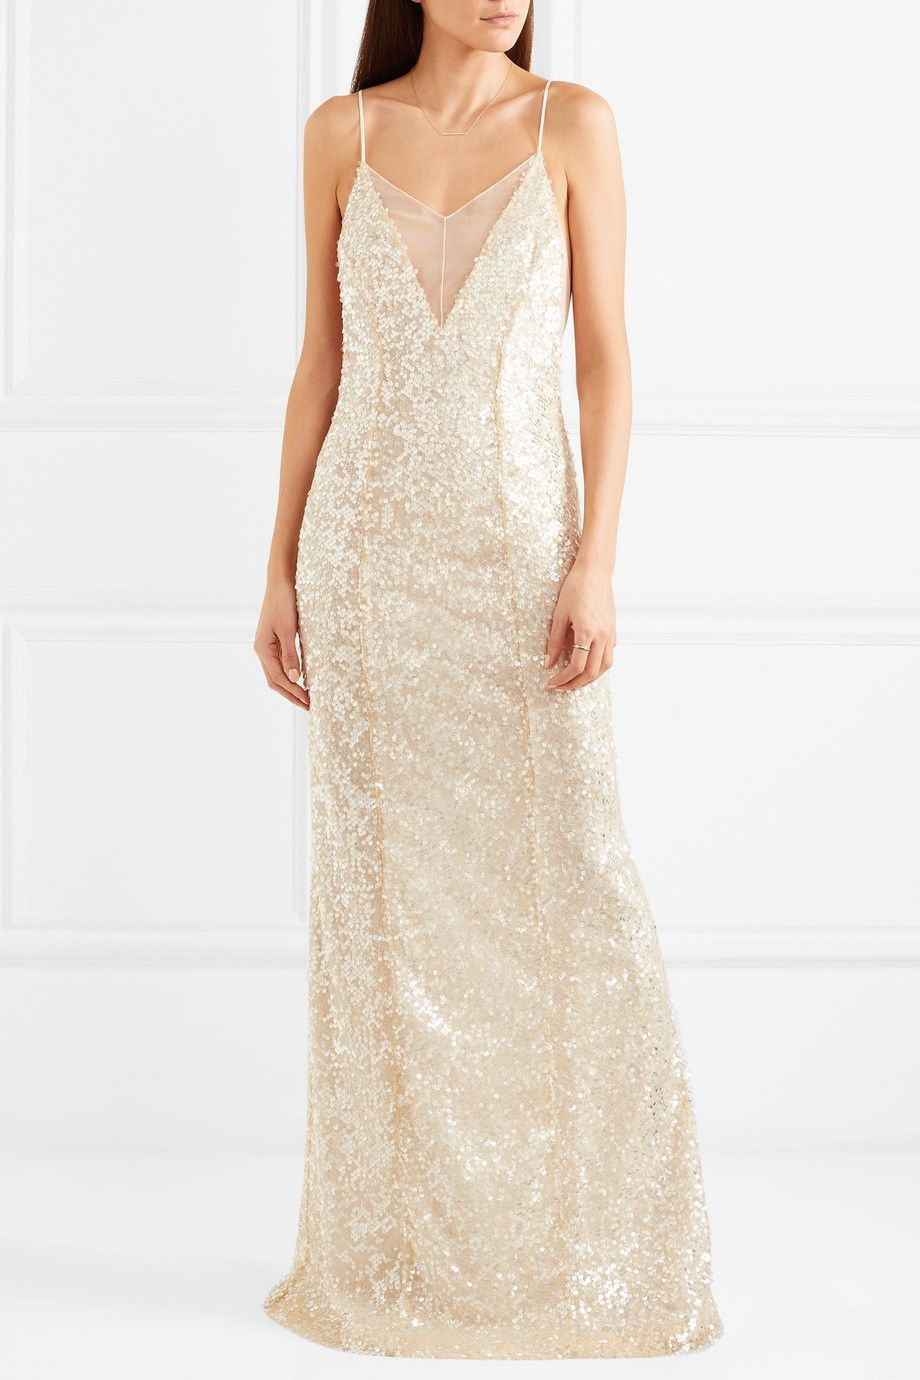 shop-galvan-hollywood-paillette-embellished-metallic-gown